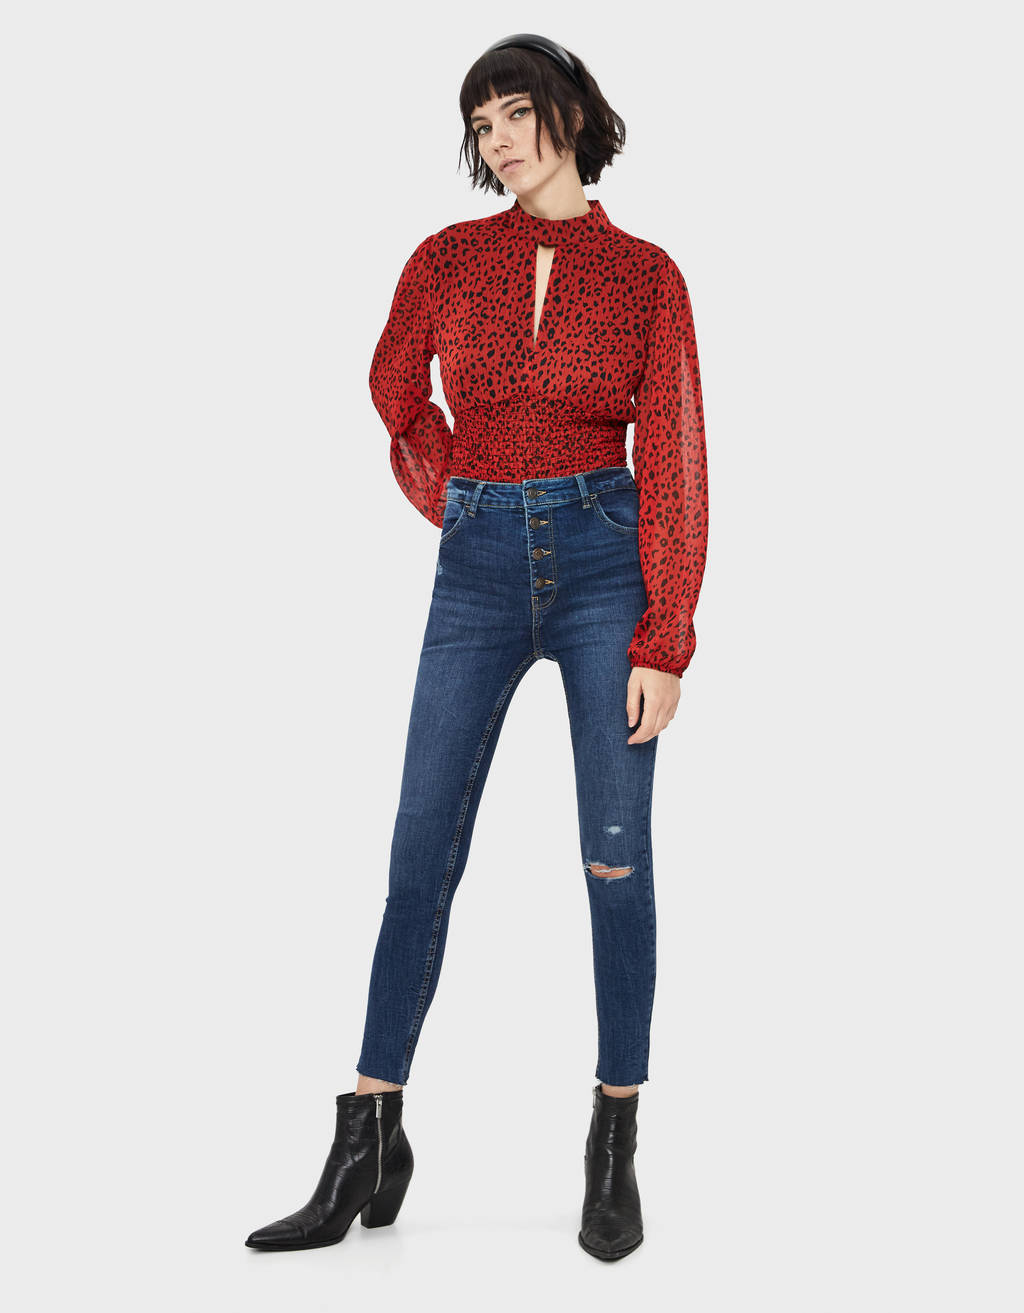 33ec29c507 Denim Collection - COLLECTION - FEMME - Bershka France